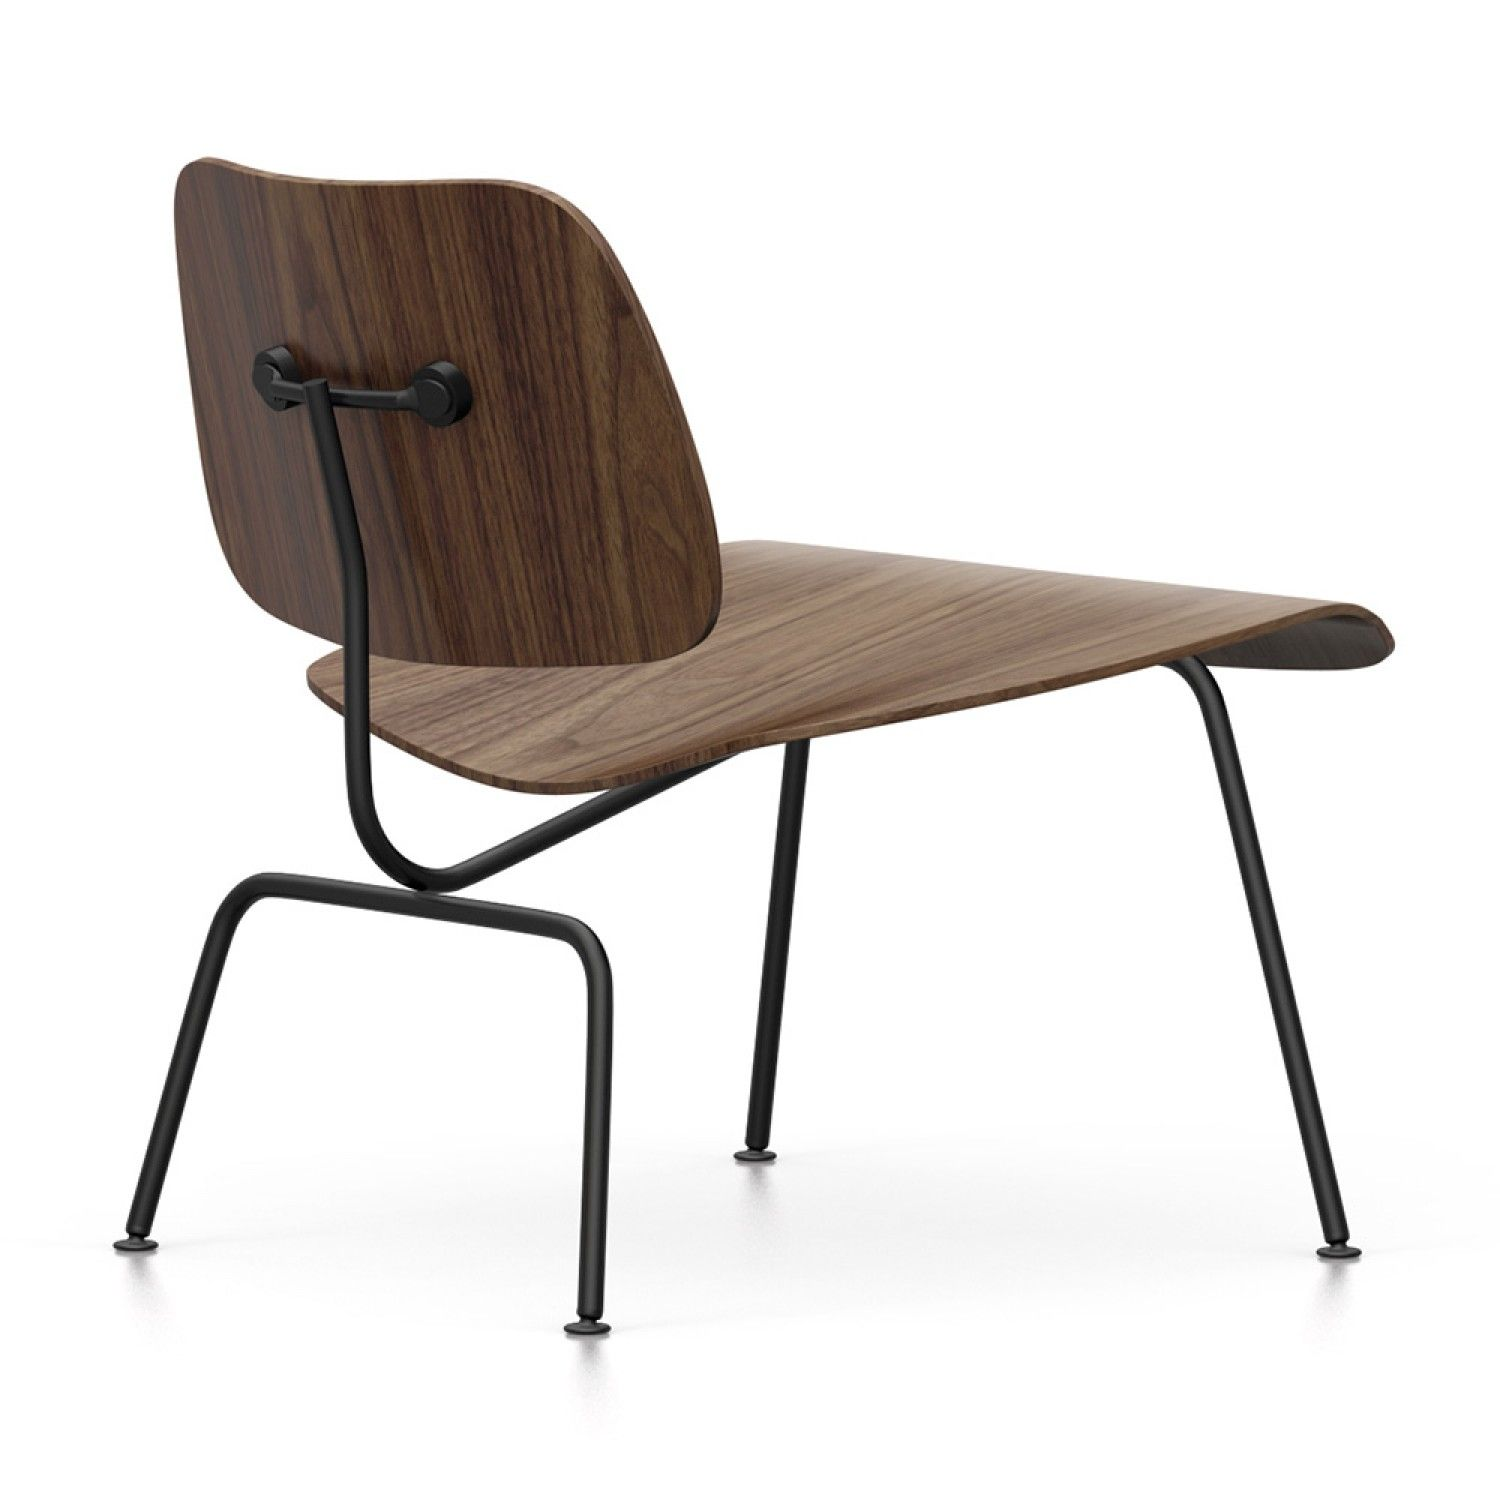 Swell Vitra Eames Plywood Group Limited Edition Lcm Lounge Chair Pabps2019 Chair Design Images Pabps2019Com